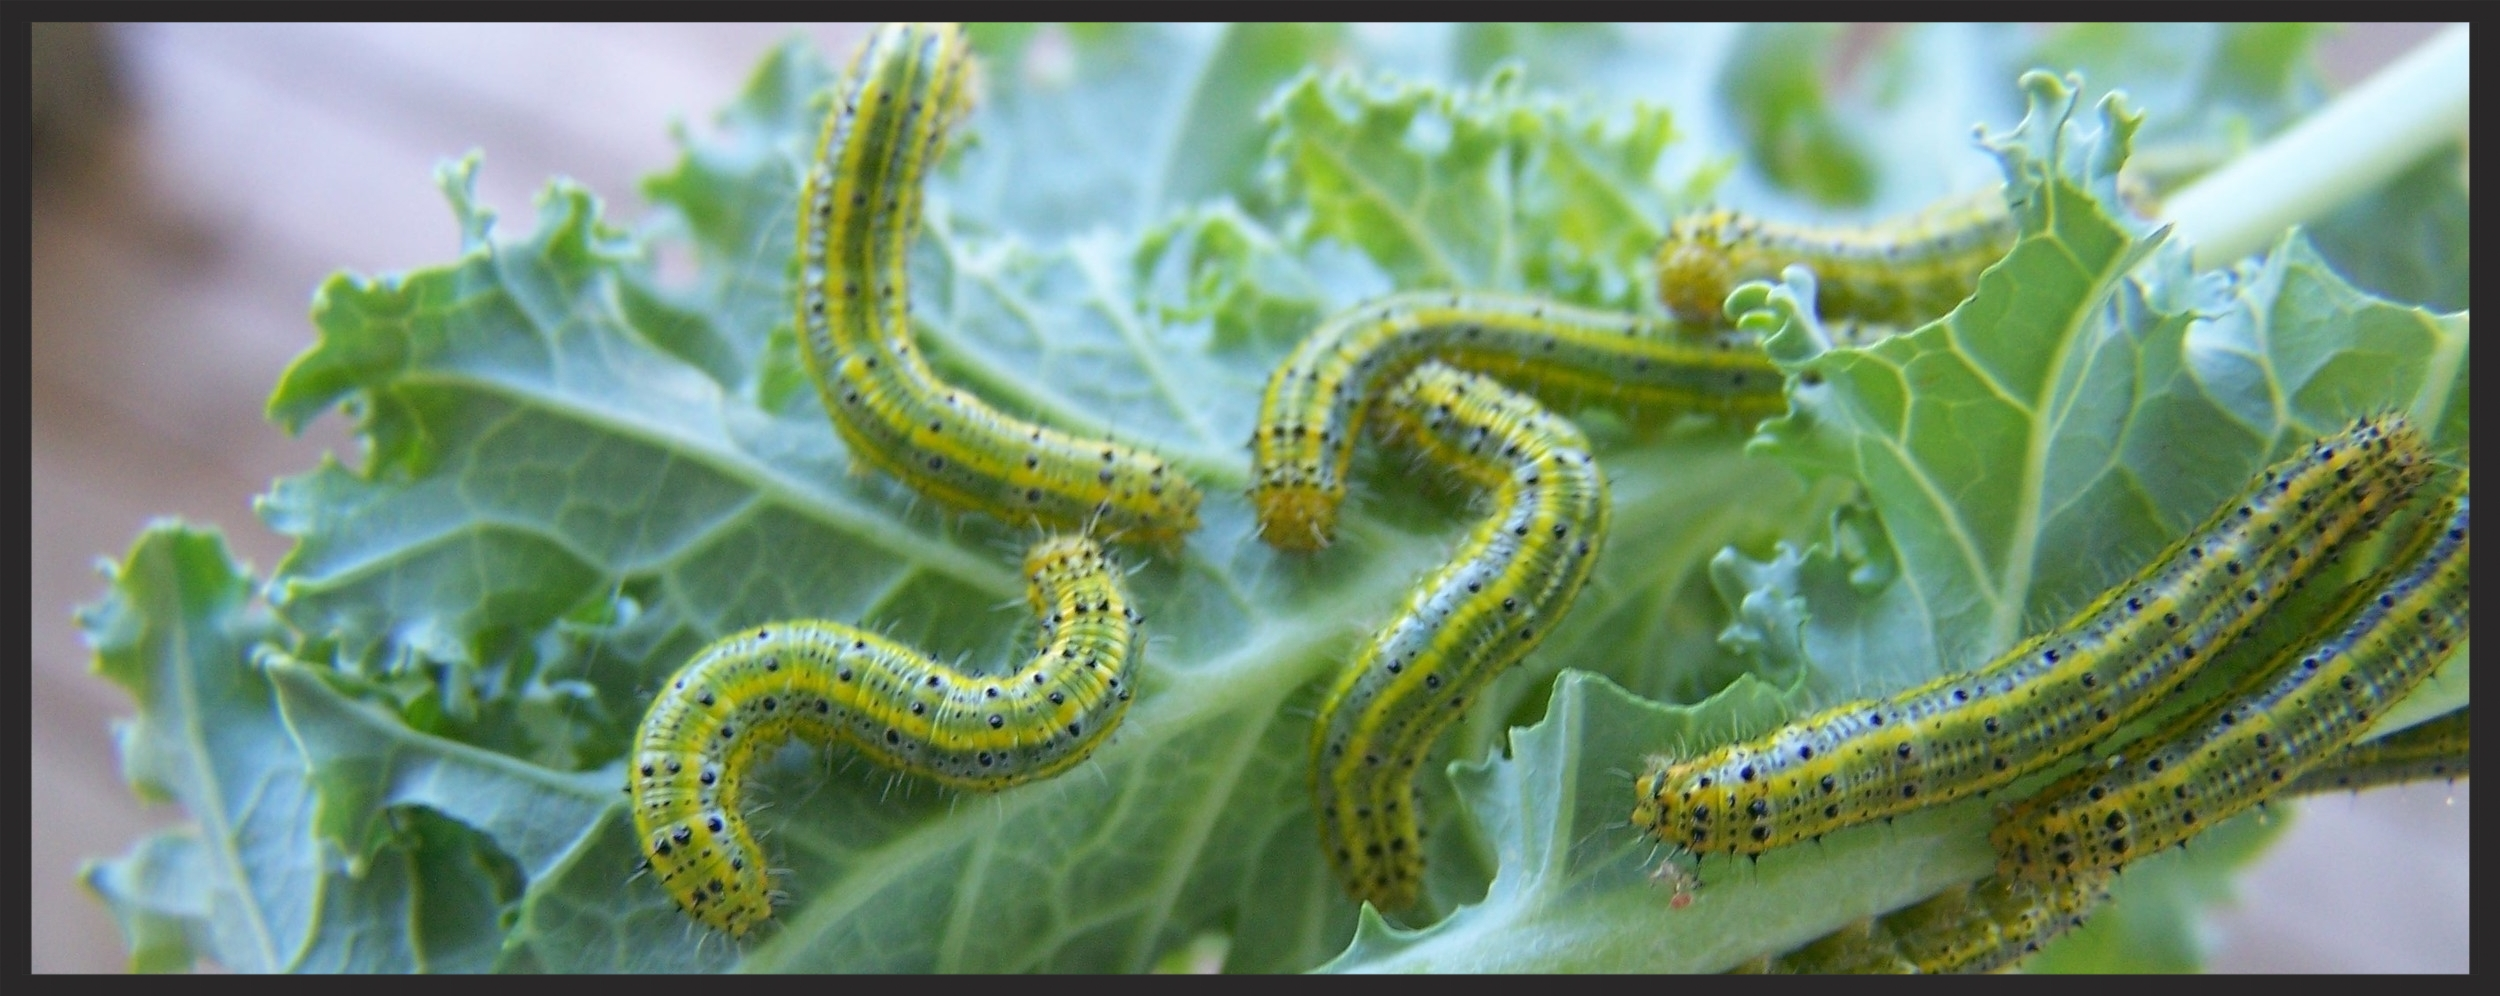 Some VERY hungry caterpillars!